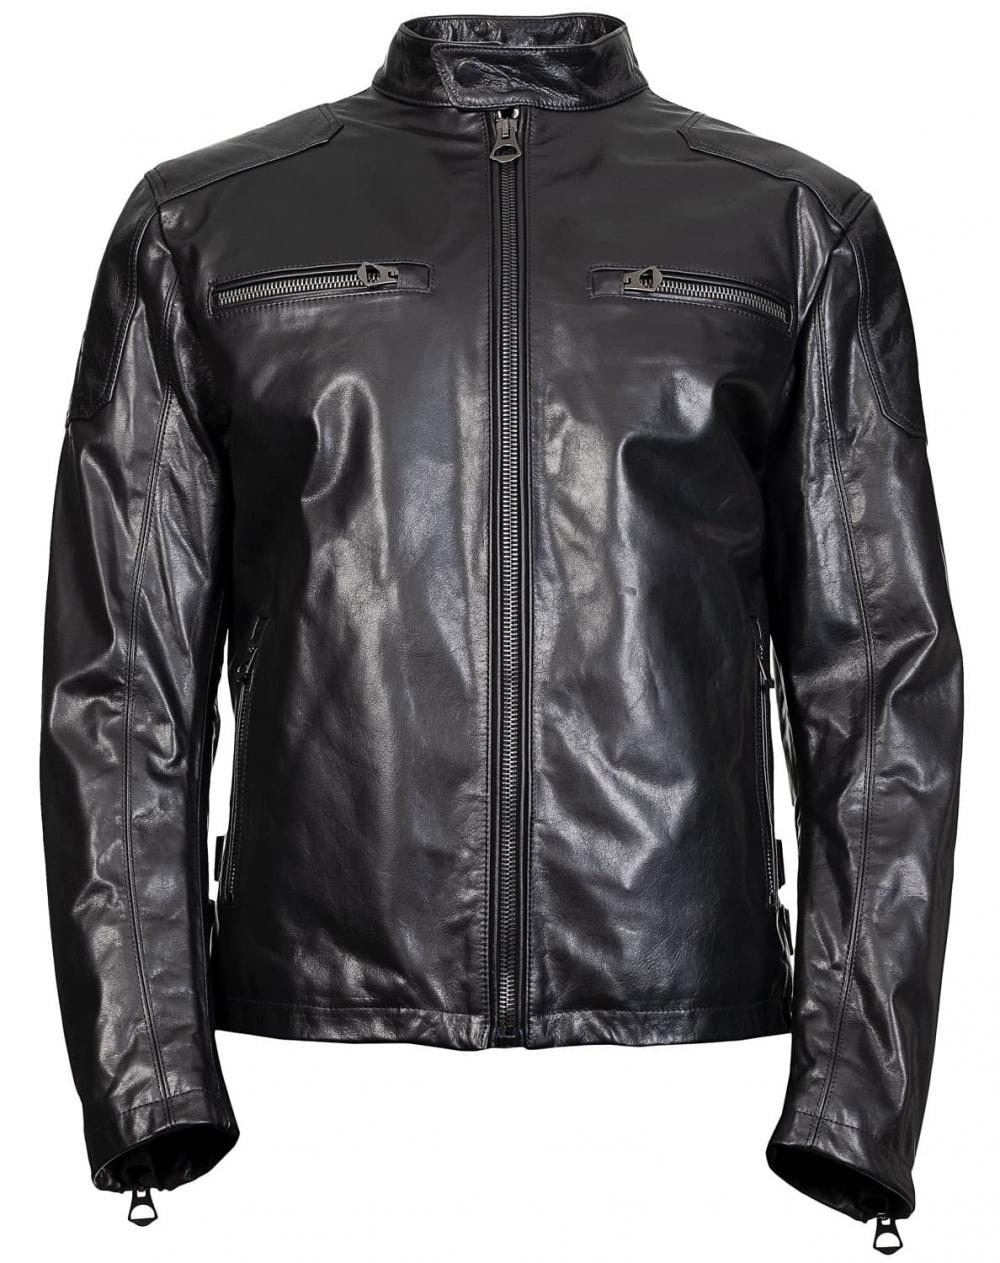 Silver Arrow X Jacket